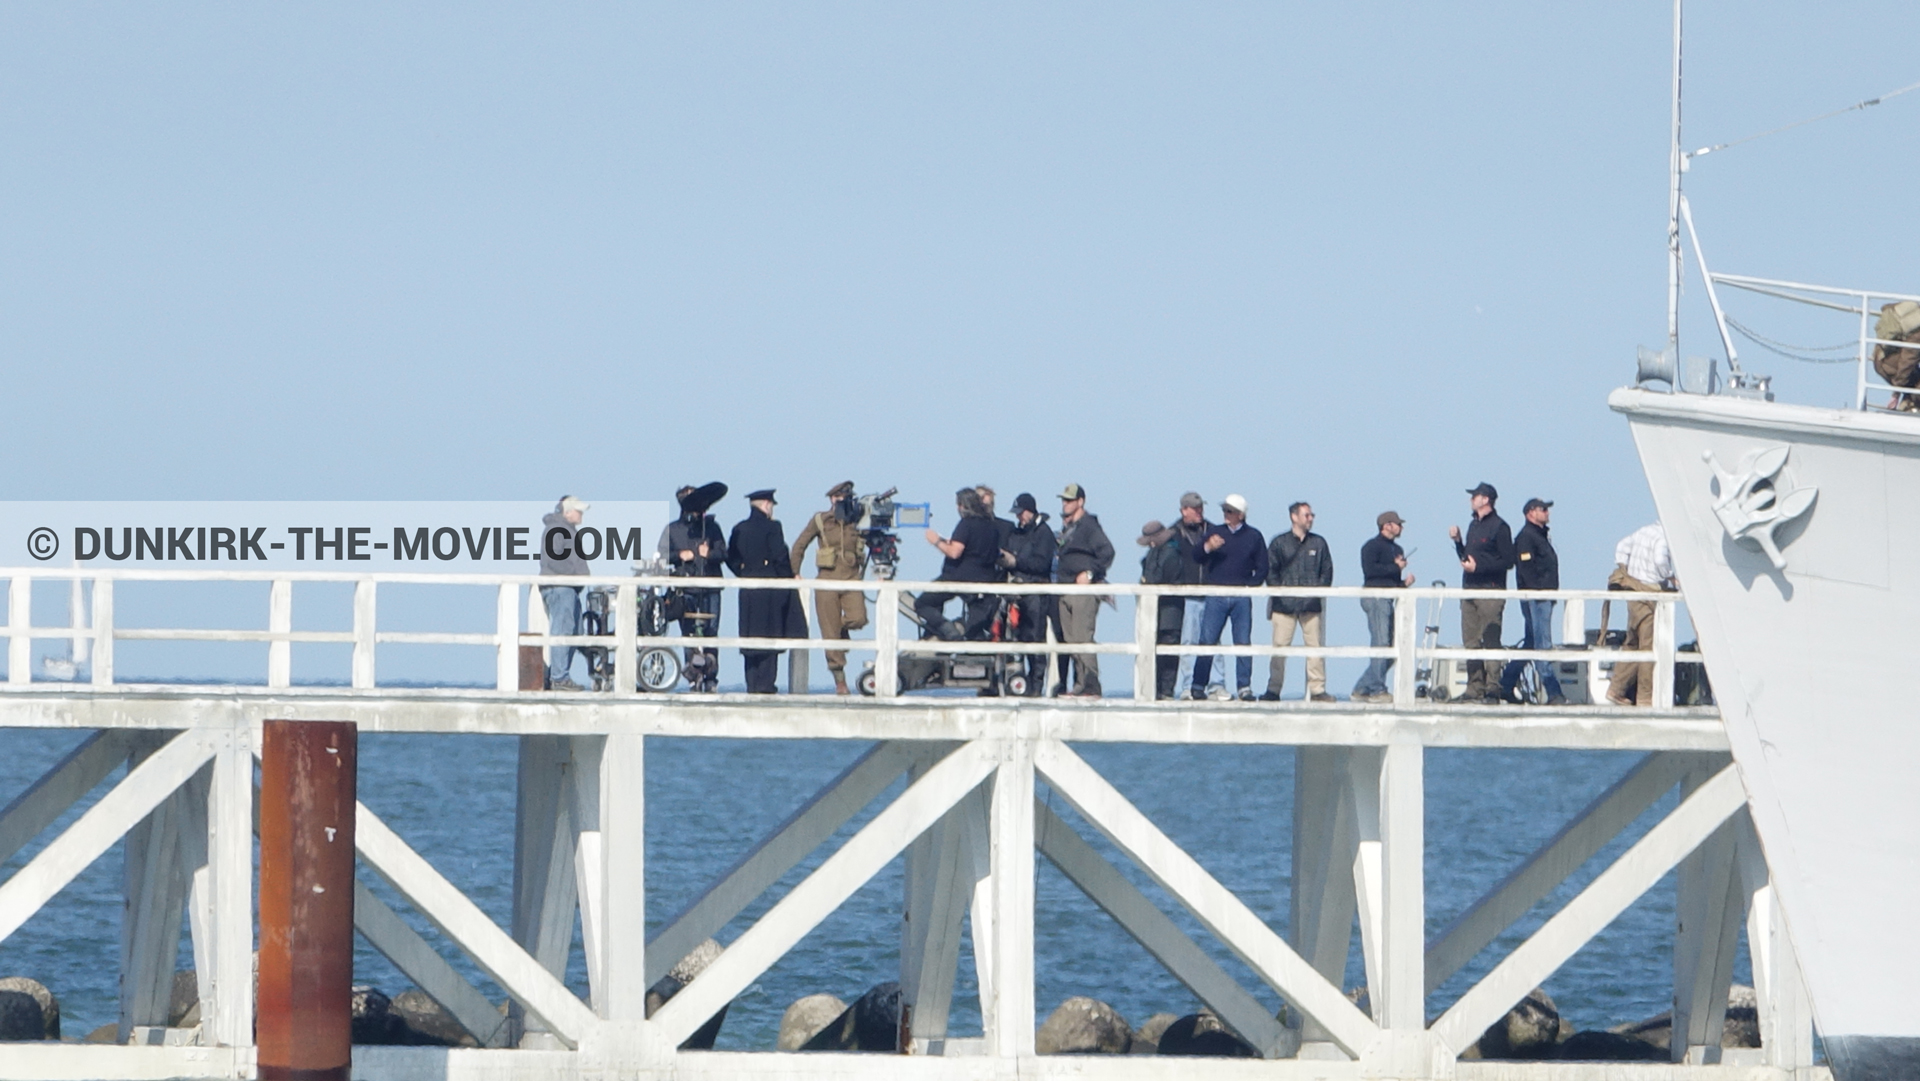 Picture with actor, IMAX camera, blue sky, supernumeraries, H32 - Hr.Ms. Sittard, Hoyte van Hoytema, EST pier, Kenneth Branagh,  from behind the scene of the Dunkirk movie by Nolan